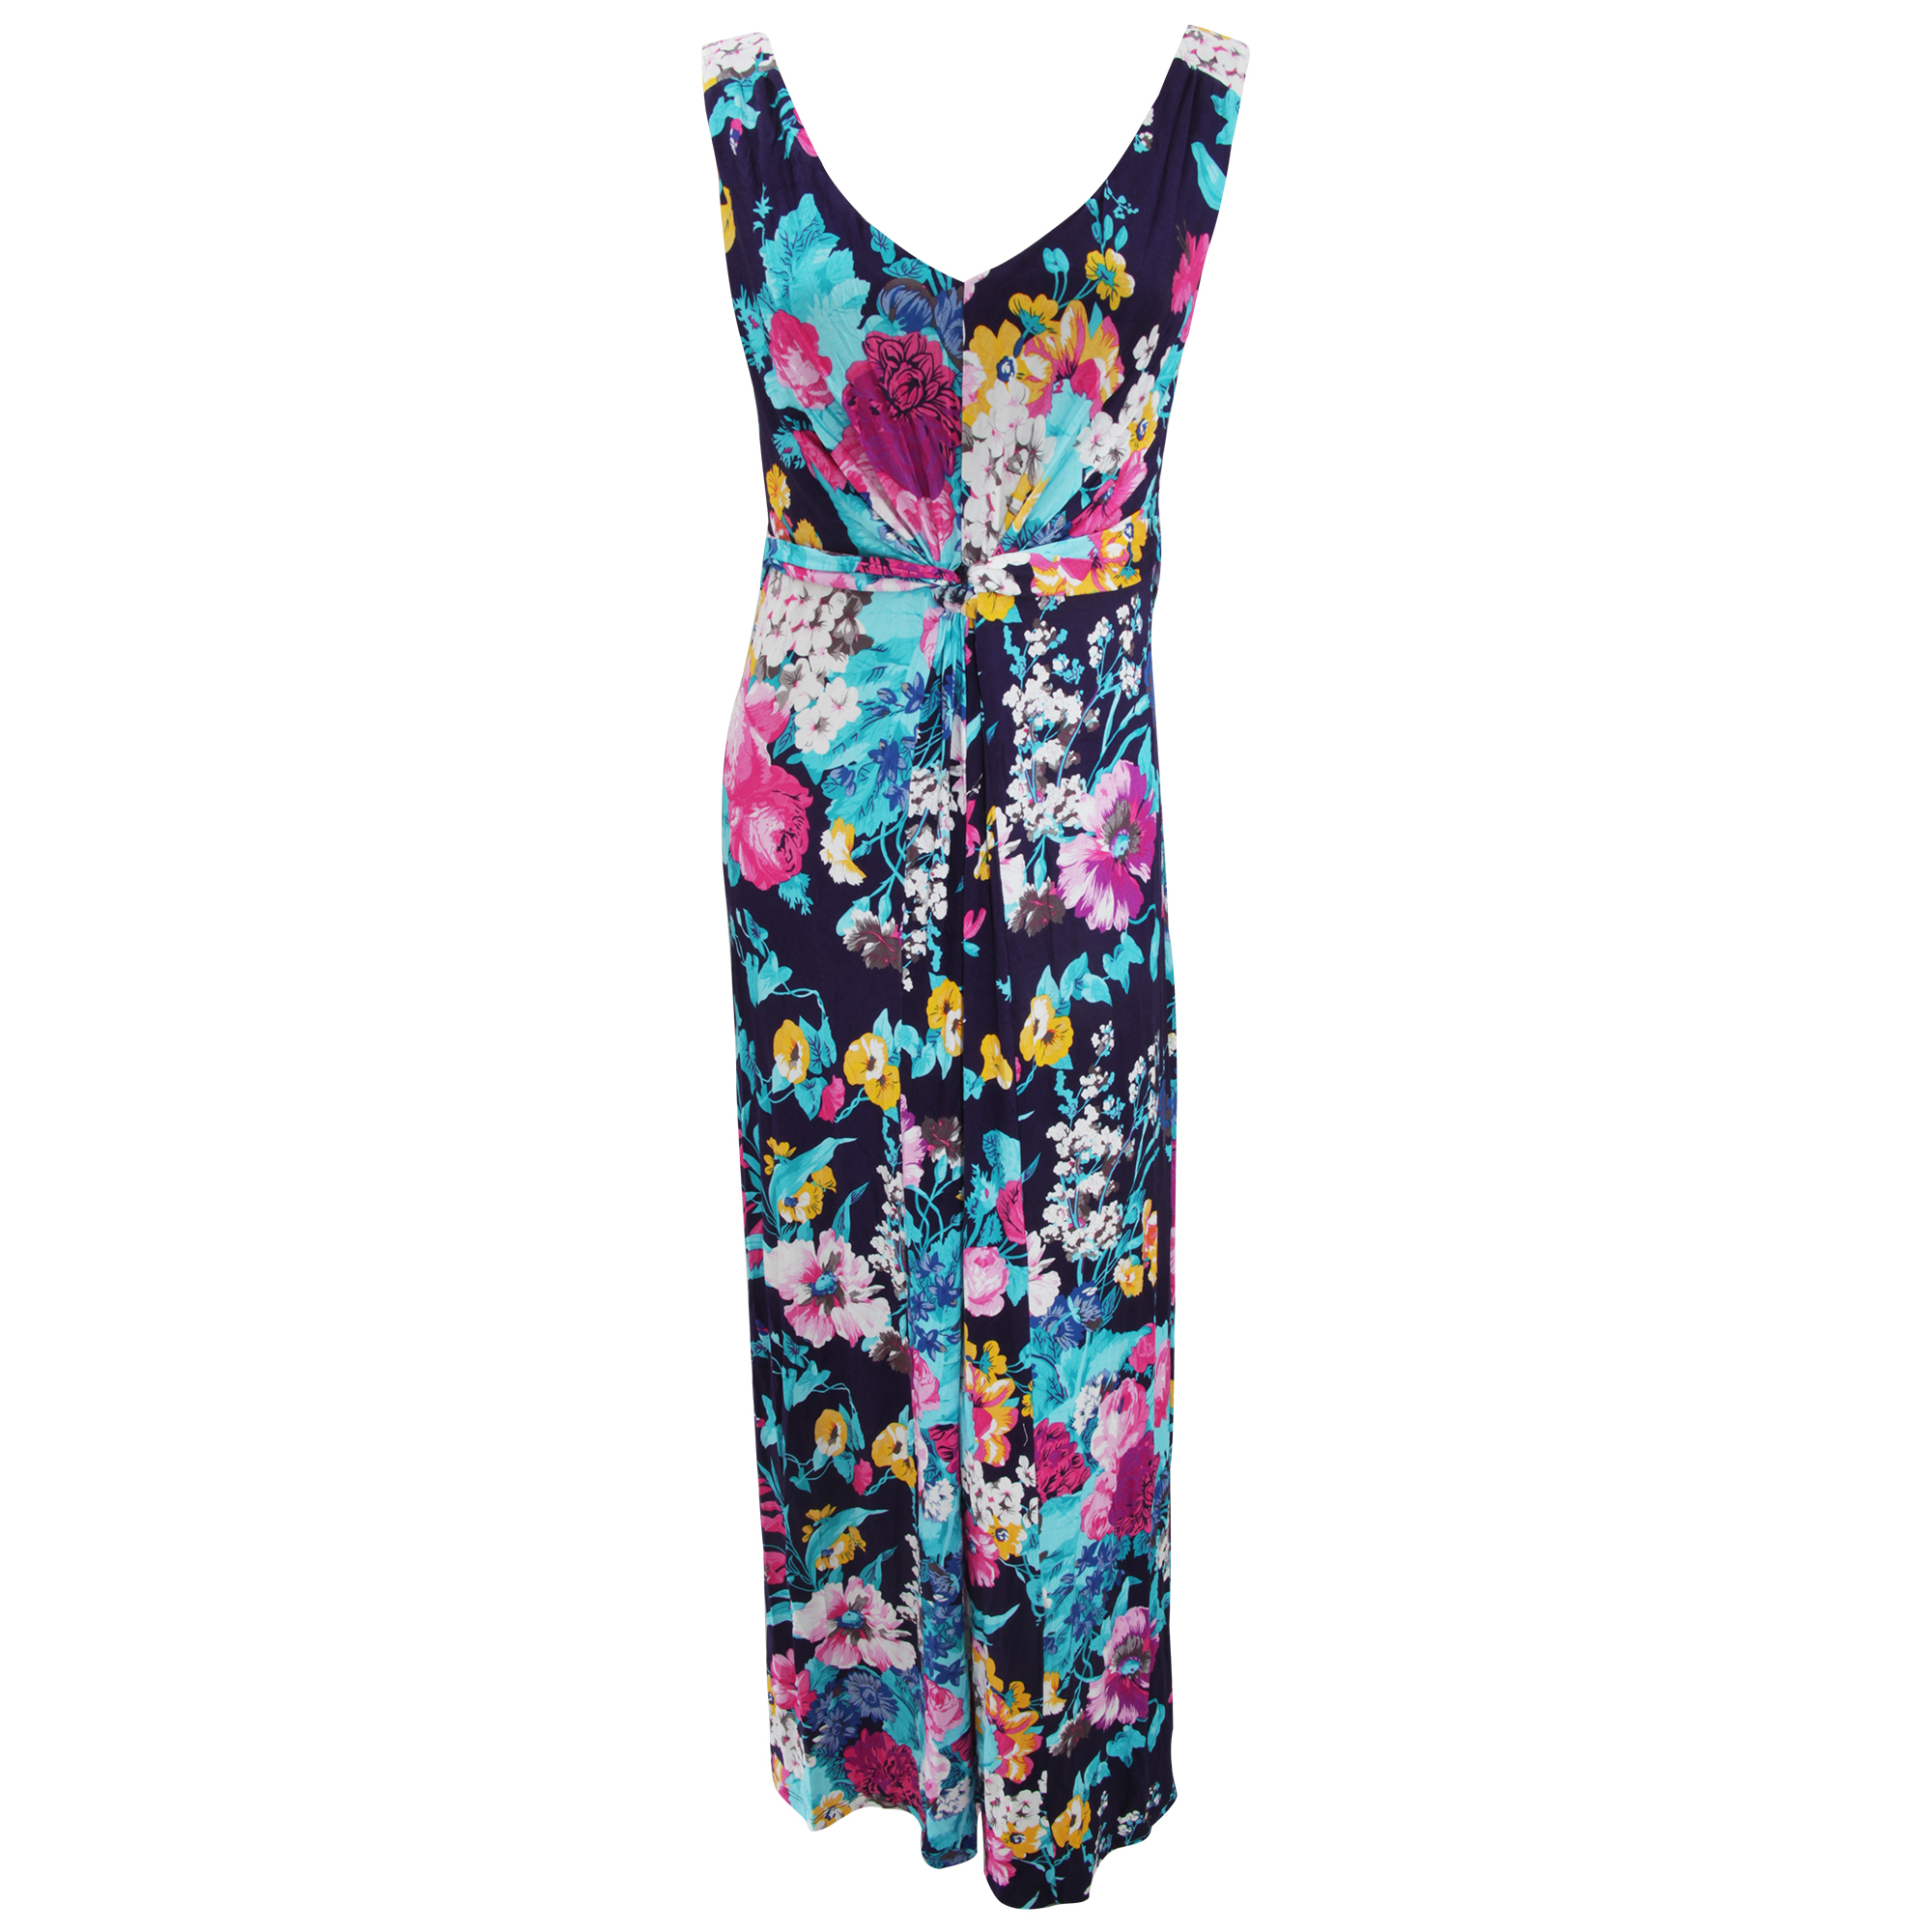 Bulk, Wholesale, Job Lot, Clearance Assorted Clothing (Dresses, Tops, Footwear And More) (Box 14) (Womens Floral Maxi Dresses (Set of 31))